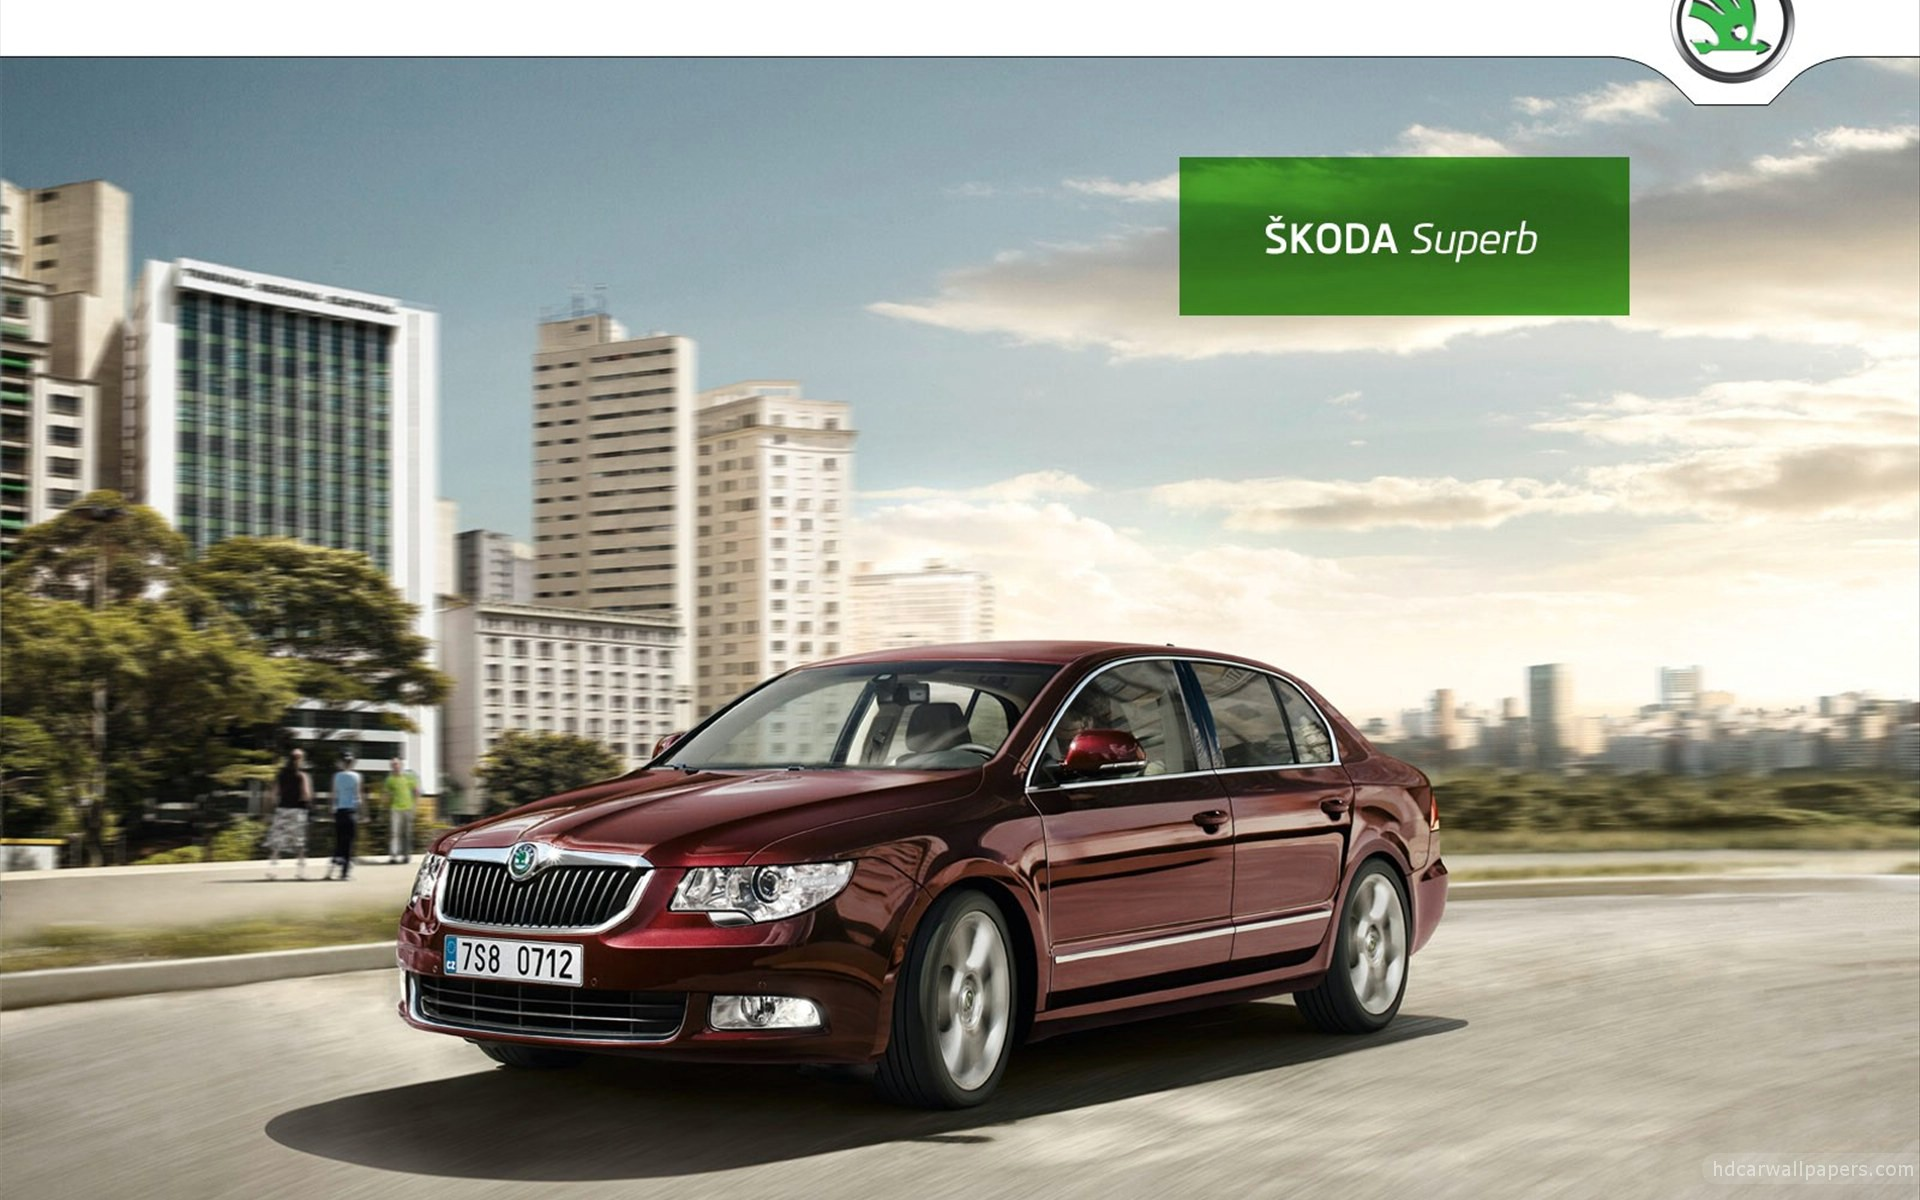 2011 Skoda Superb Wallpaper HD Car Wallpapers 1920x1200